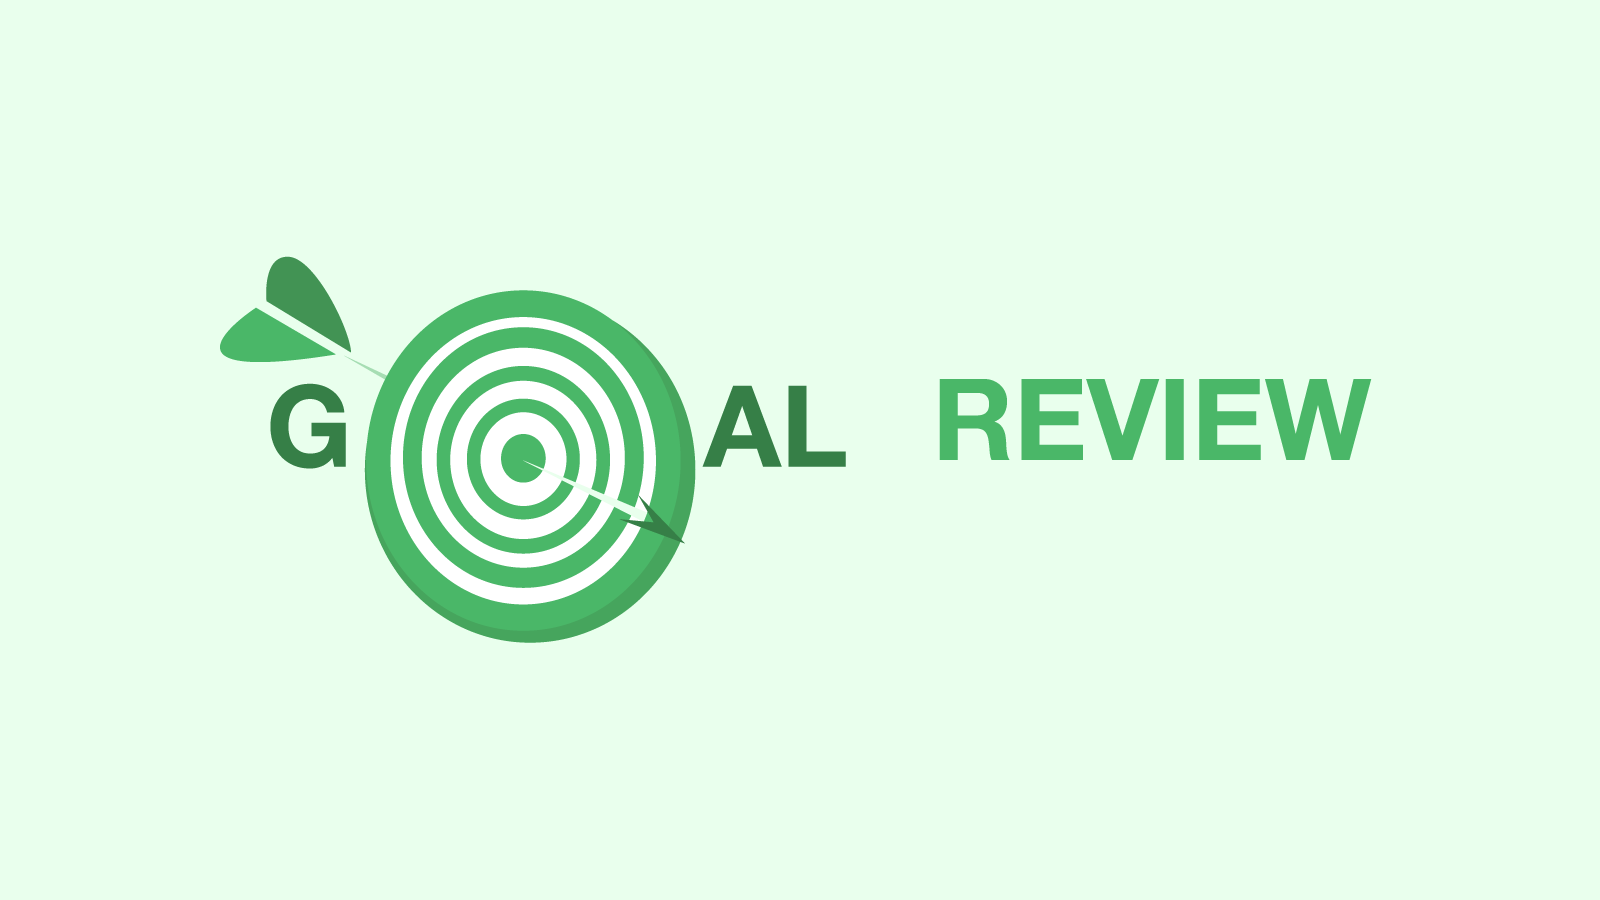 Goal review